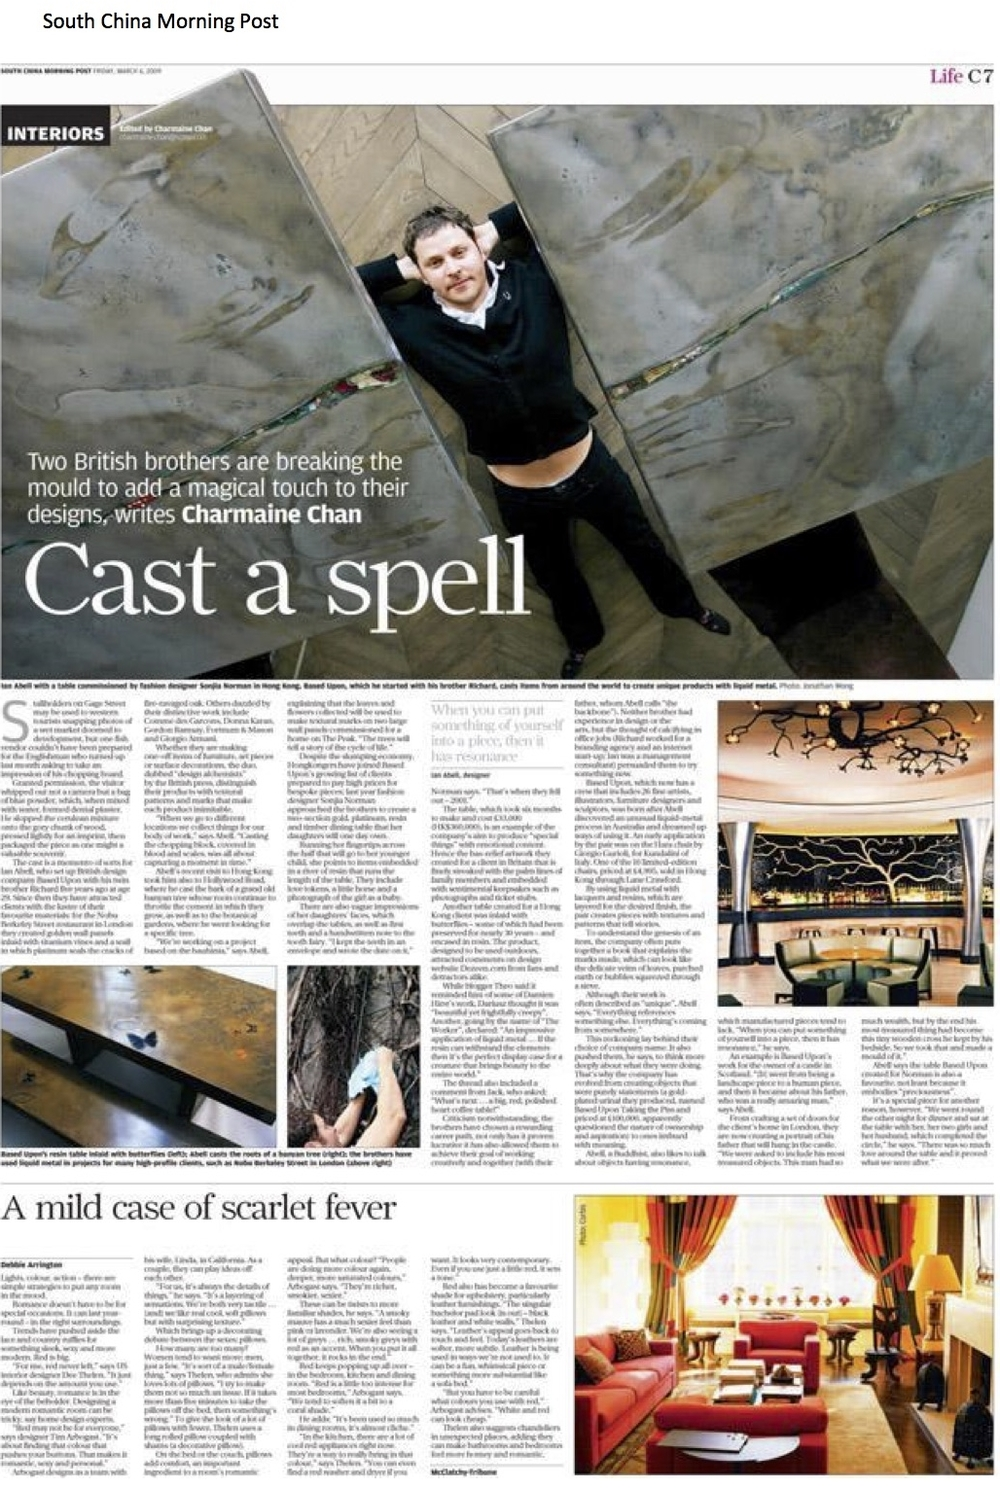 South China Morning Post_2009.jpg